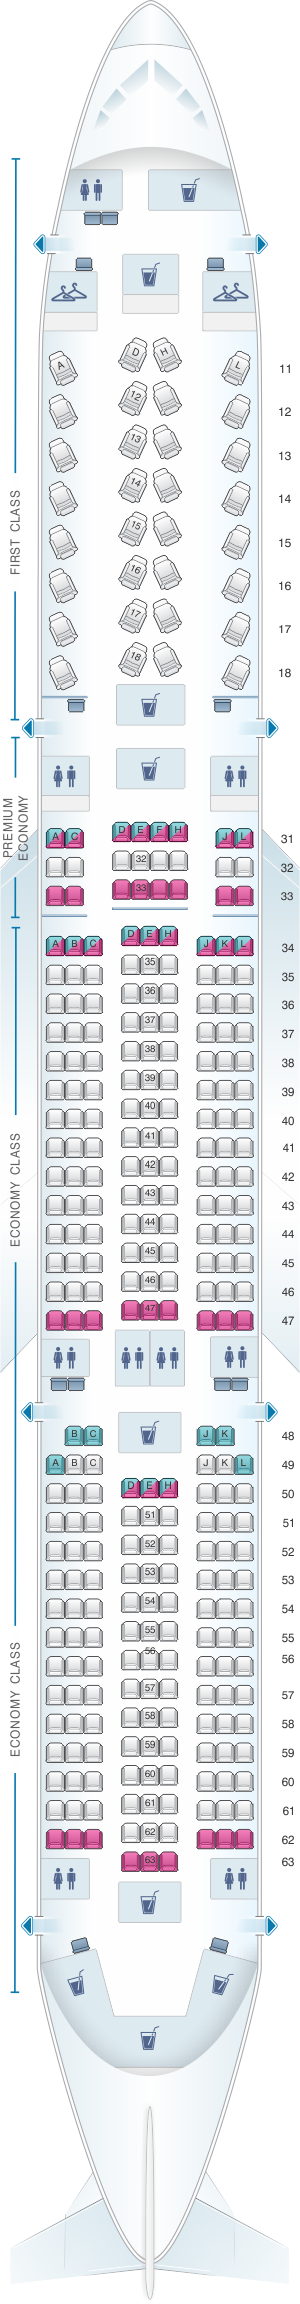 Seat map for Air China Airbus A350 900